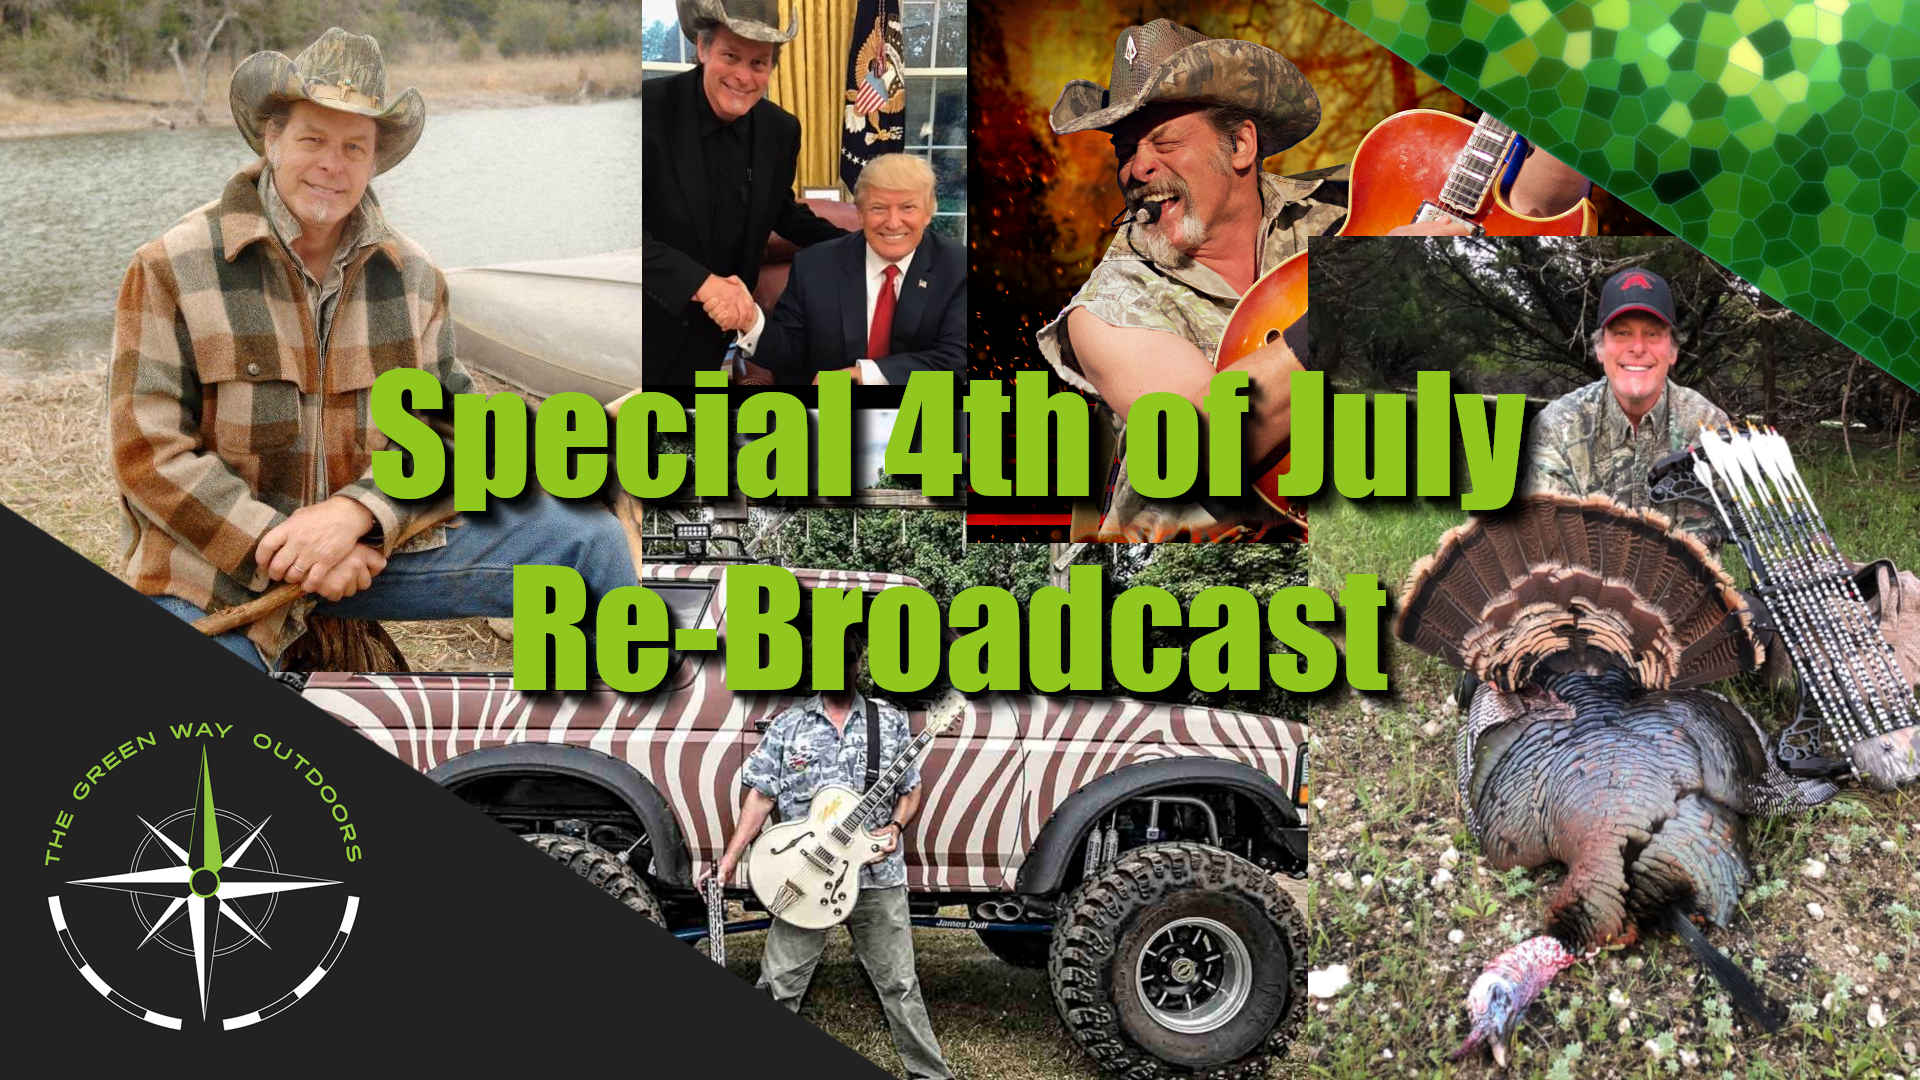 The Green Way Outdoors - Special 4th of July Re-Broadcast